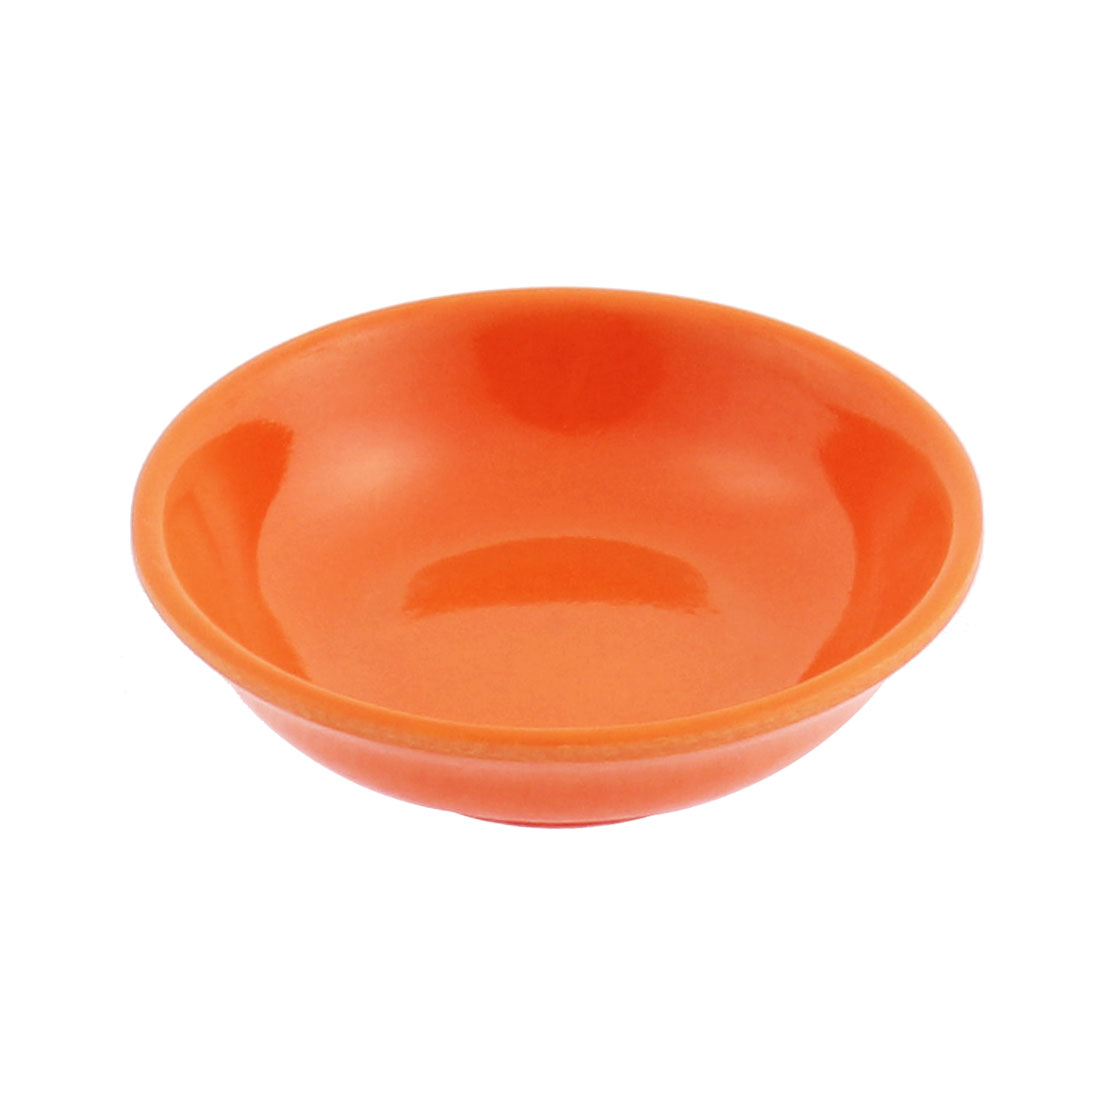 Round Shape Soy Sauce Dipping Sushi Mini Dish Plate Orange